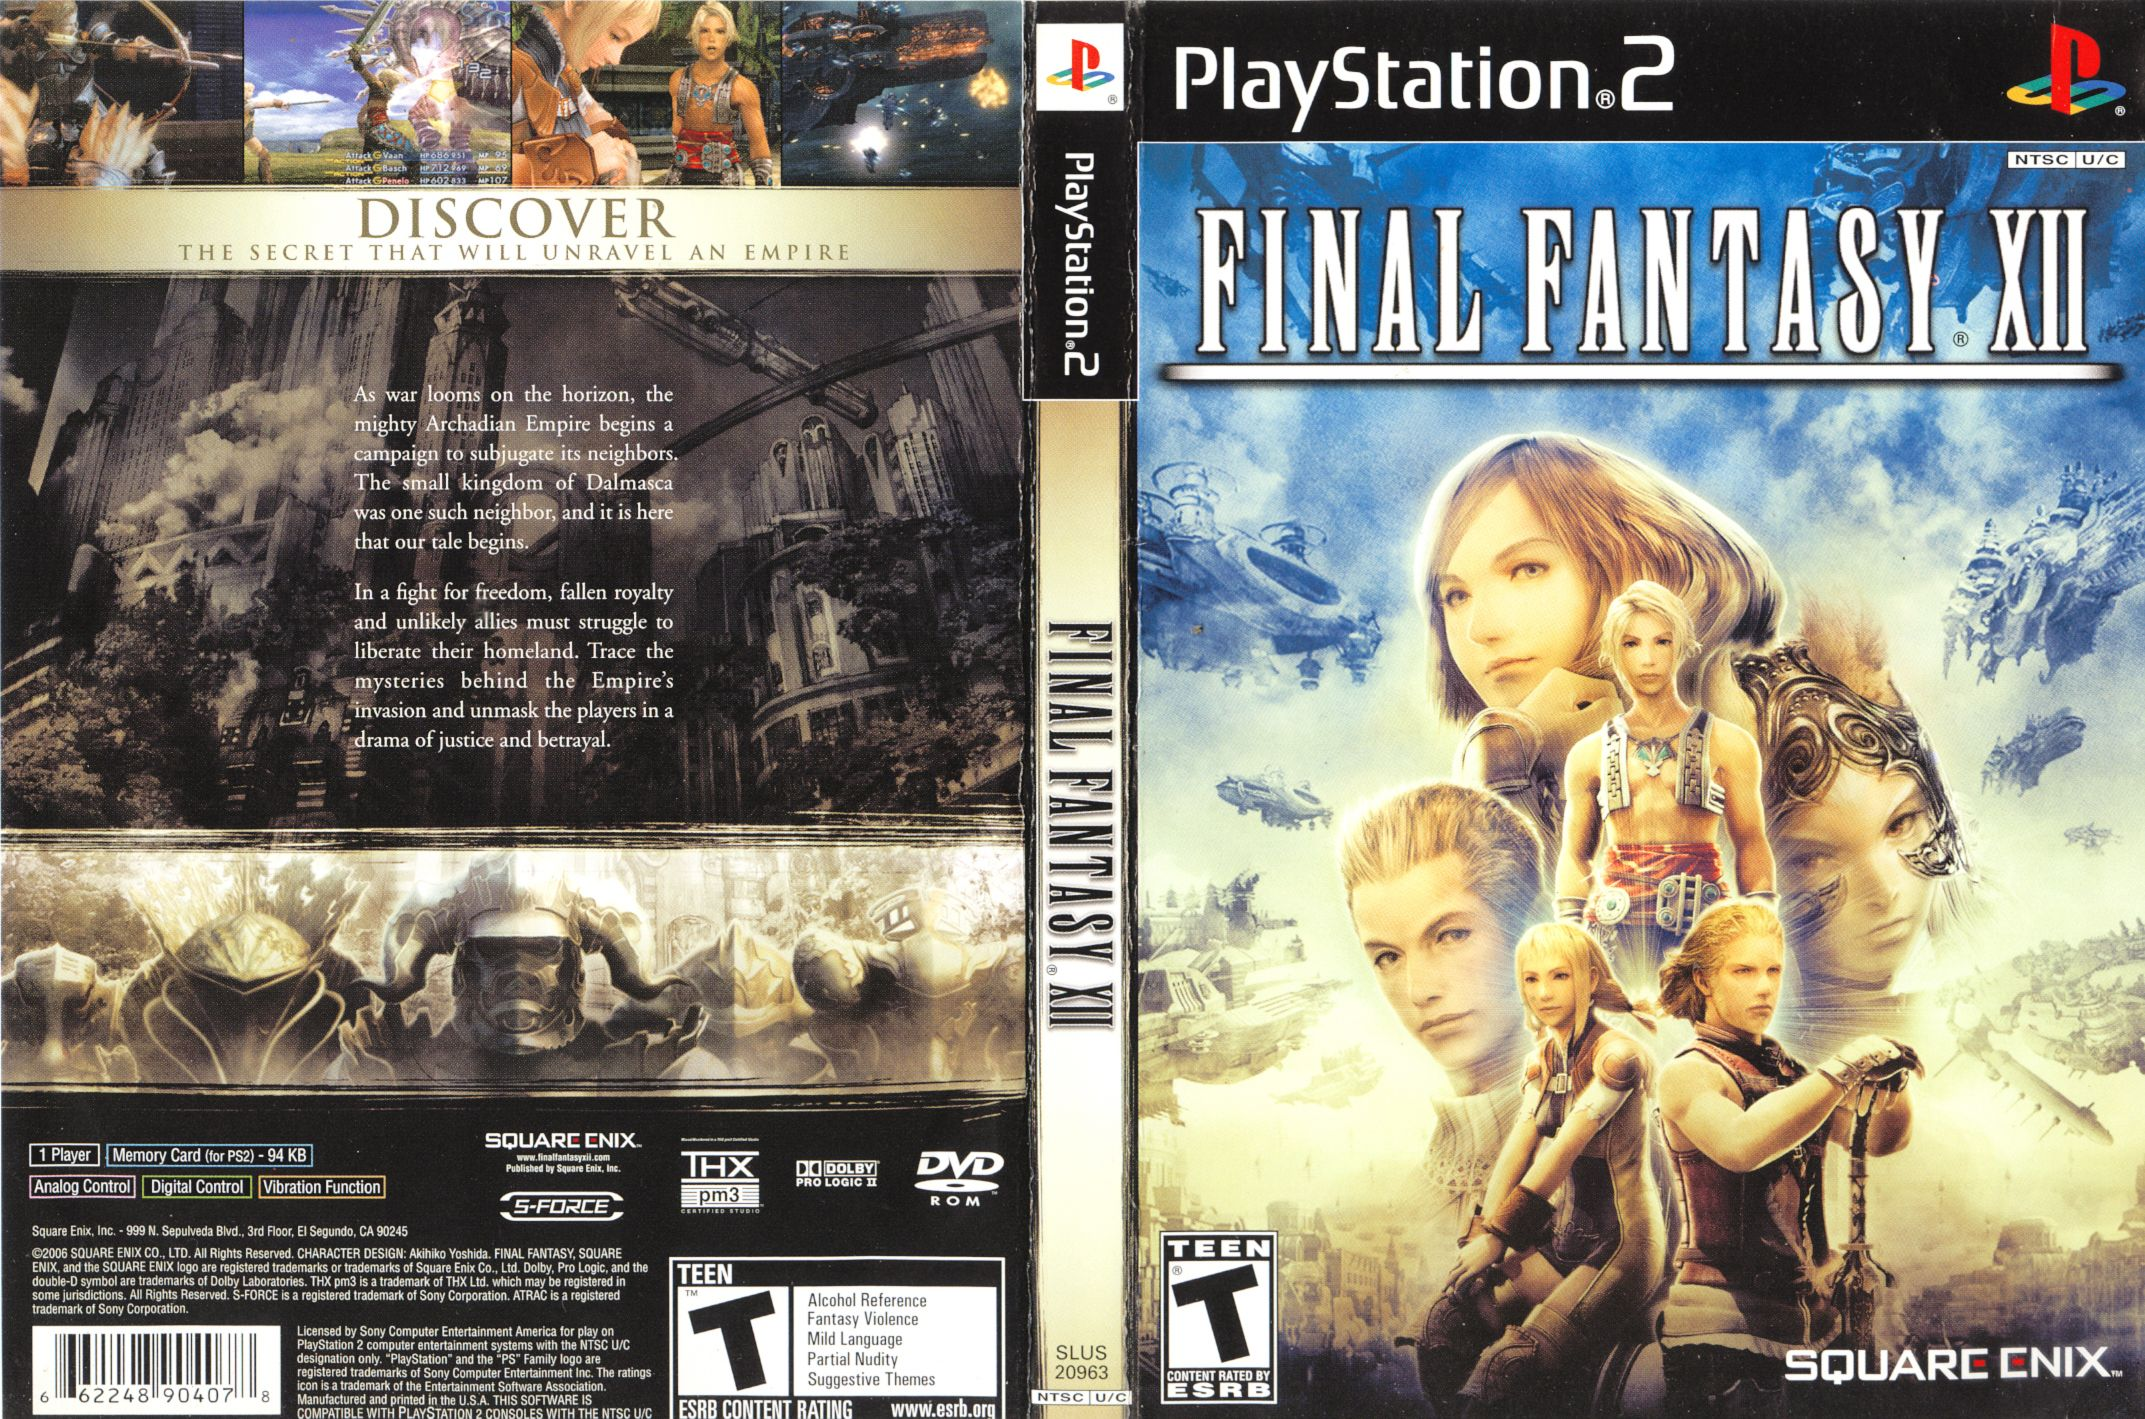 Pin by Kent Lam on GUI (With images) | Final fantasy xii ...